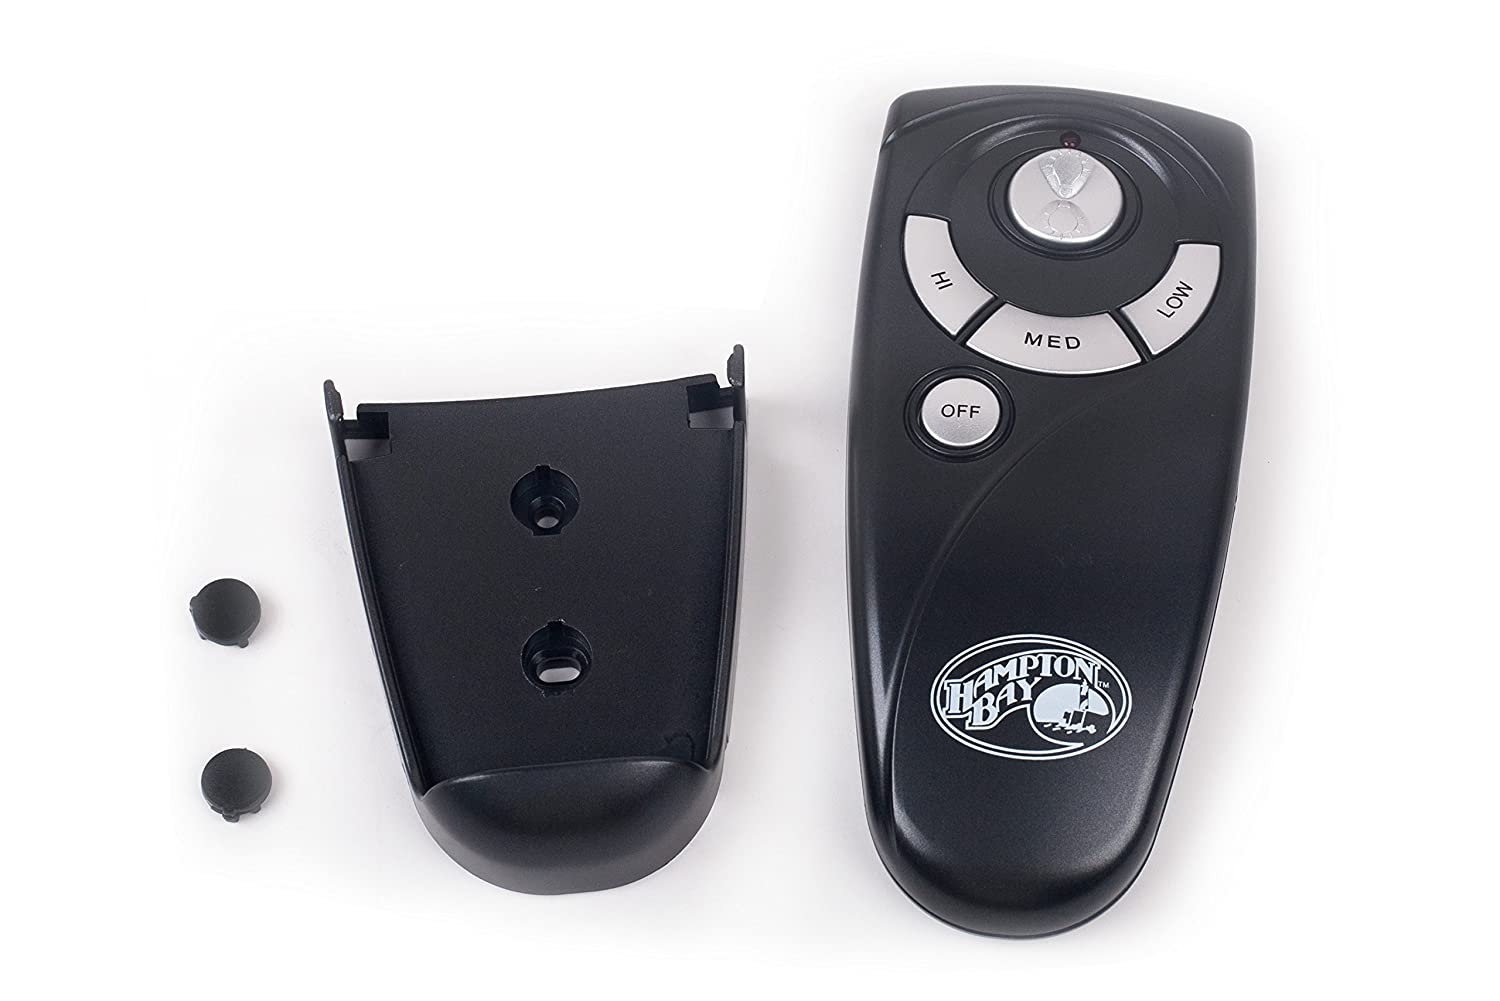 Up Light, Down Light, High, Med, Low, Off Keys With Up Light Key Black 1-Year Warranty Hampton Bay UC7083T Ceiling Fan Remote Control Replacement by Trusted Anderic Brand